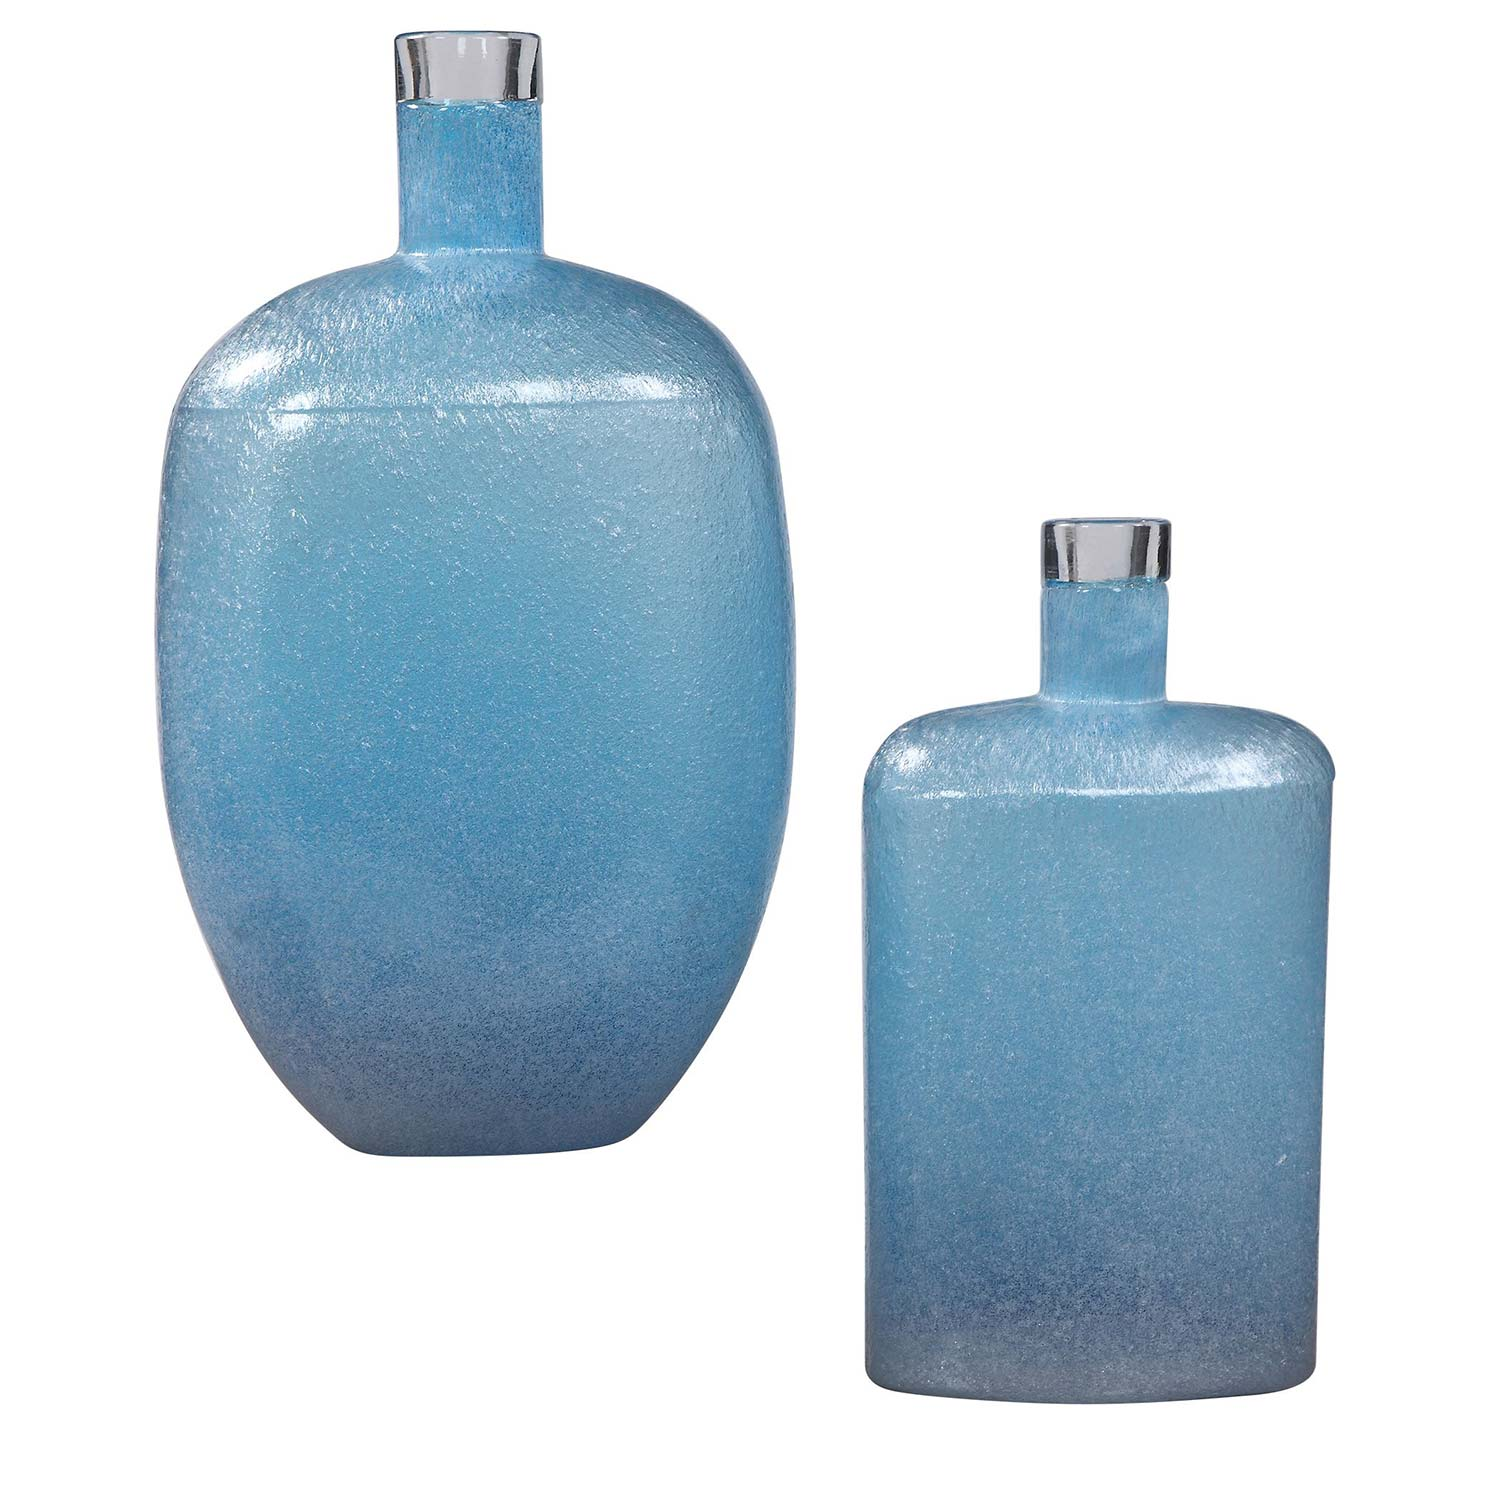 Uttermost Suvi Glass Vases - Set of 2 - Blue